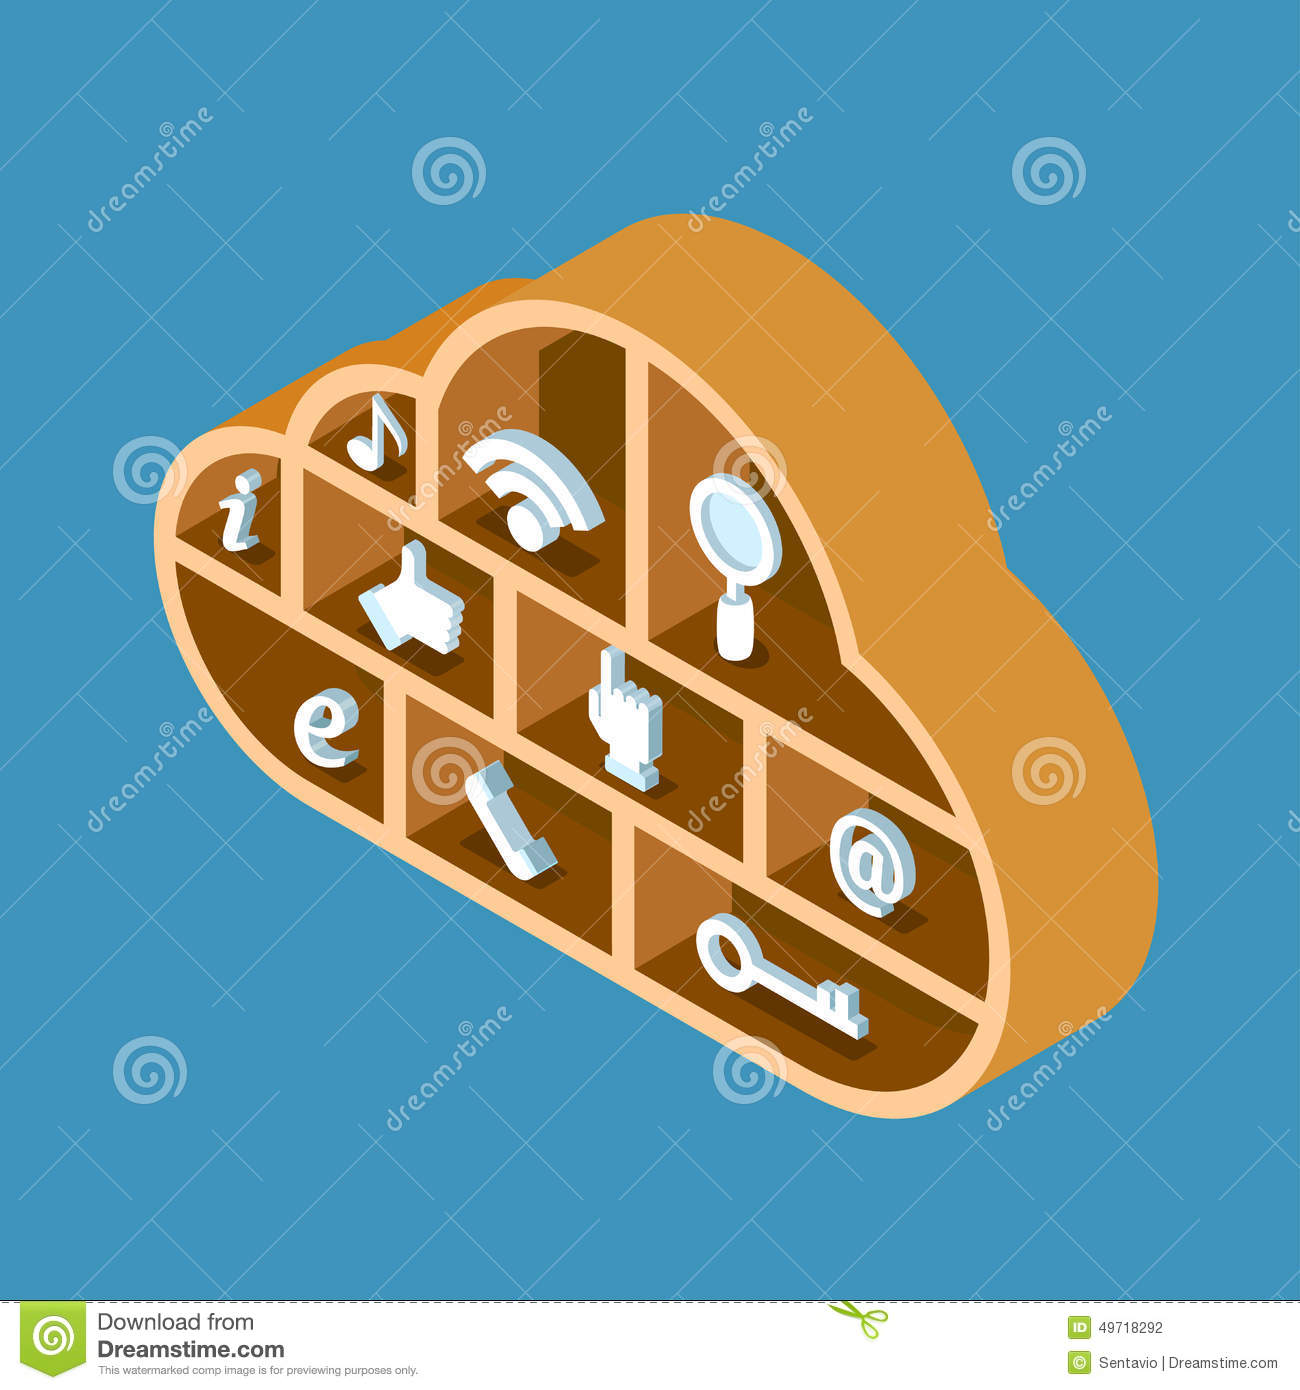 Modern 3d Flat Design Isometric Concept For Cloud Service Online Media File  Data Backup Storage. Cloud Shape Wooden Library Shelf With Icon Set.